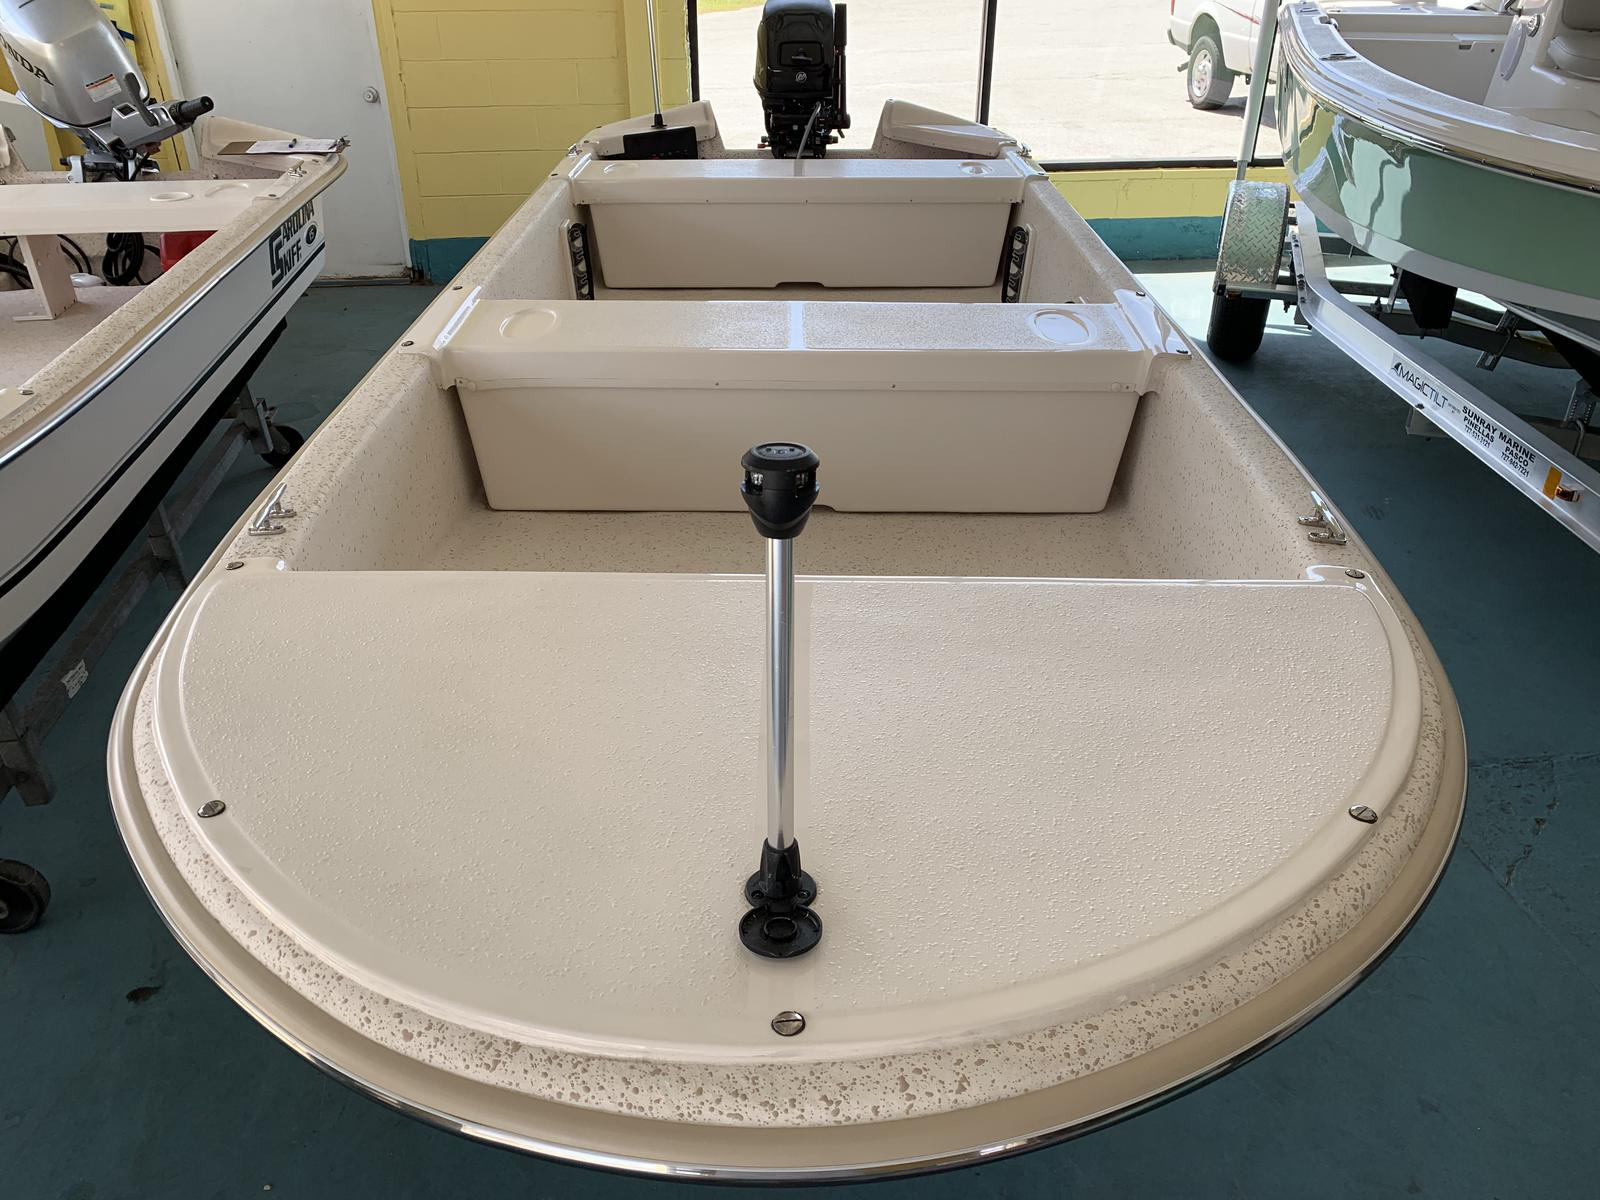 Miraculous 2019 Carolina Skiff 15 Jv Cc For Sale In Largo Fl Sunray Onthecornerstone Fun Painted Chair Ideas Images Onthecornerstoneorg